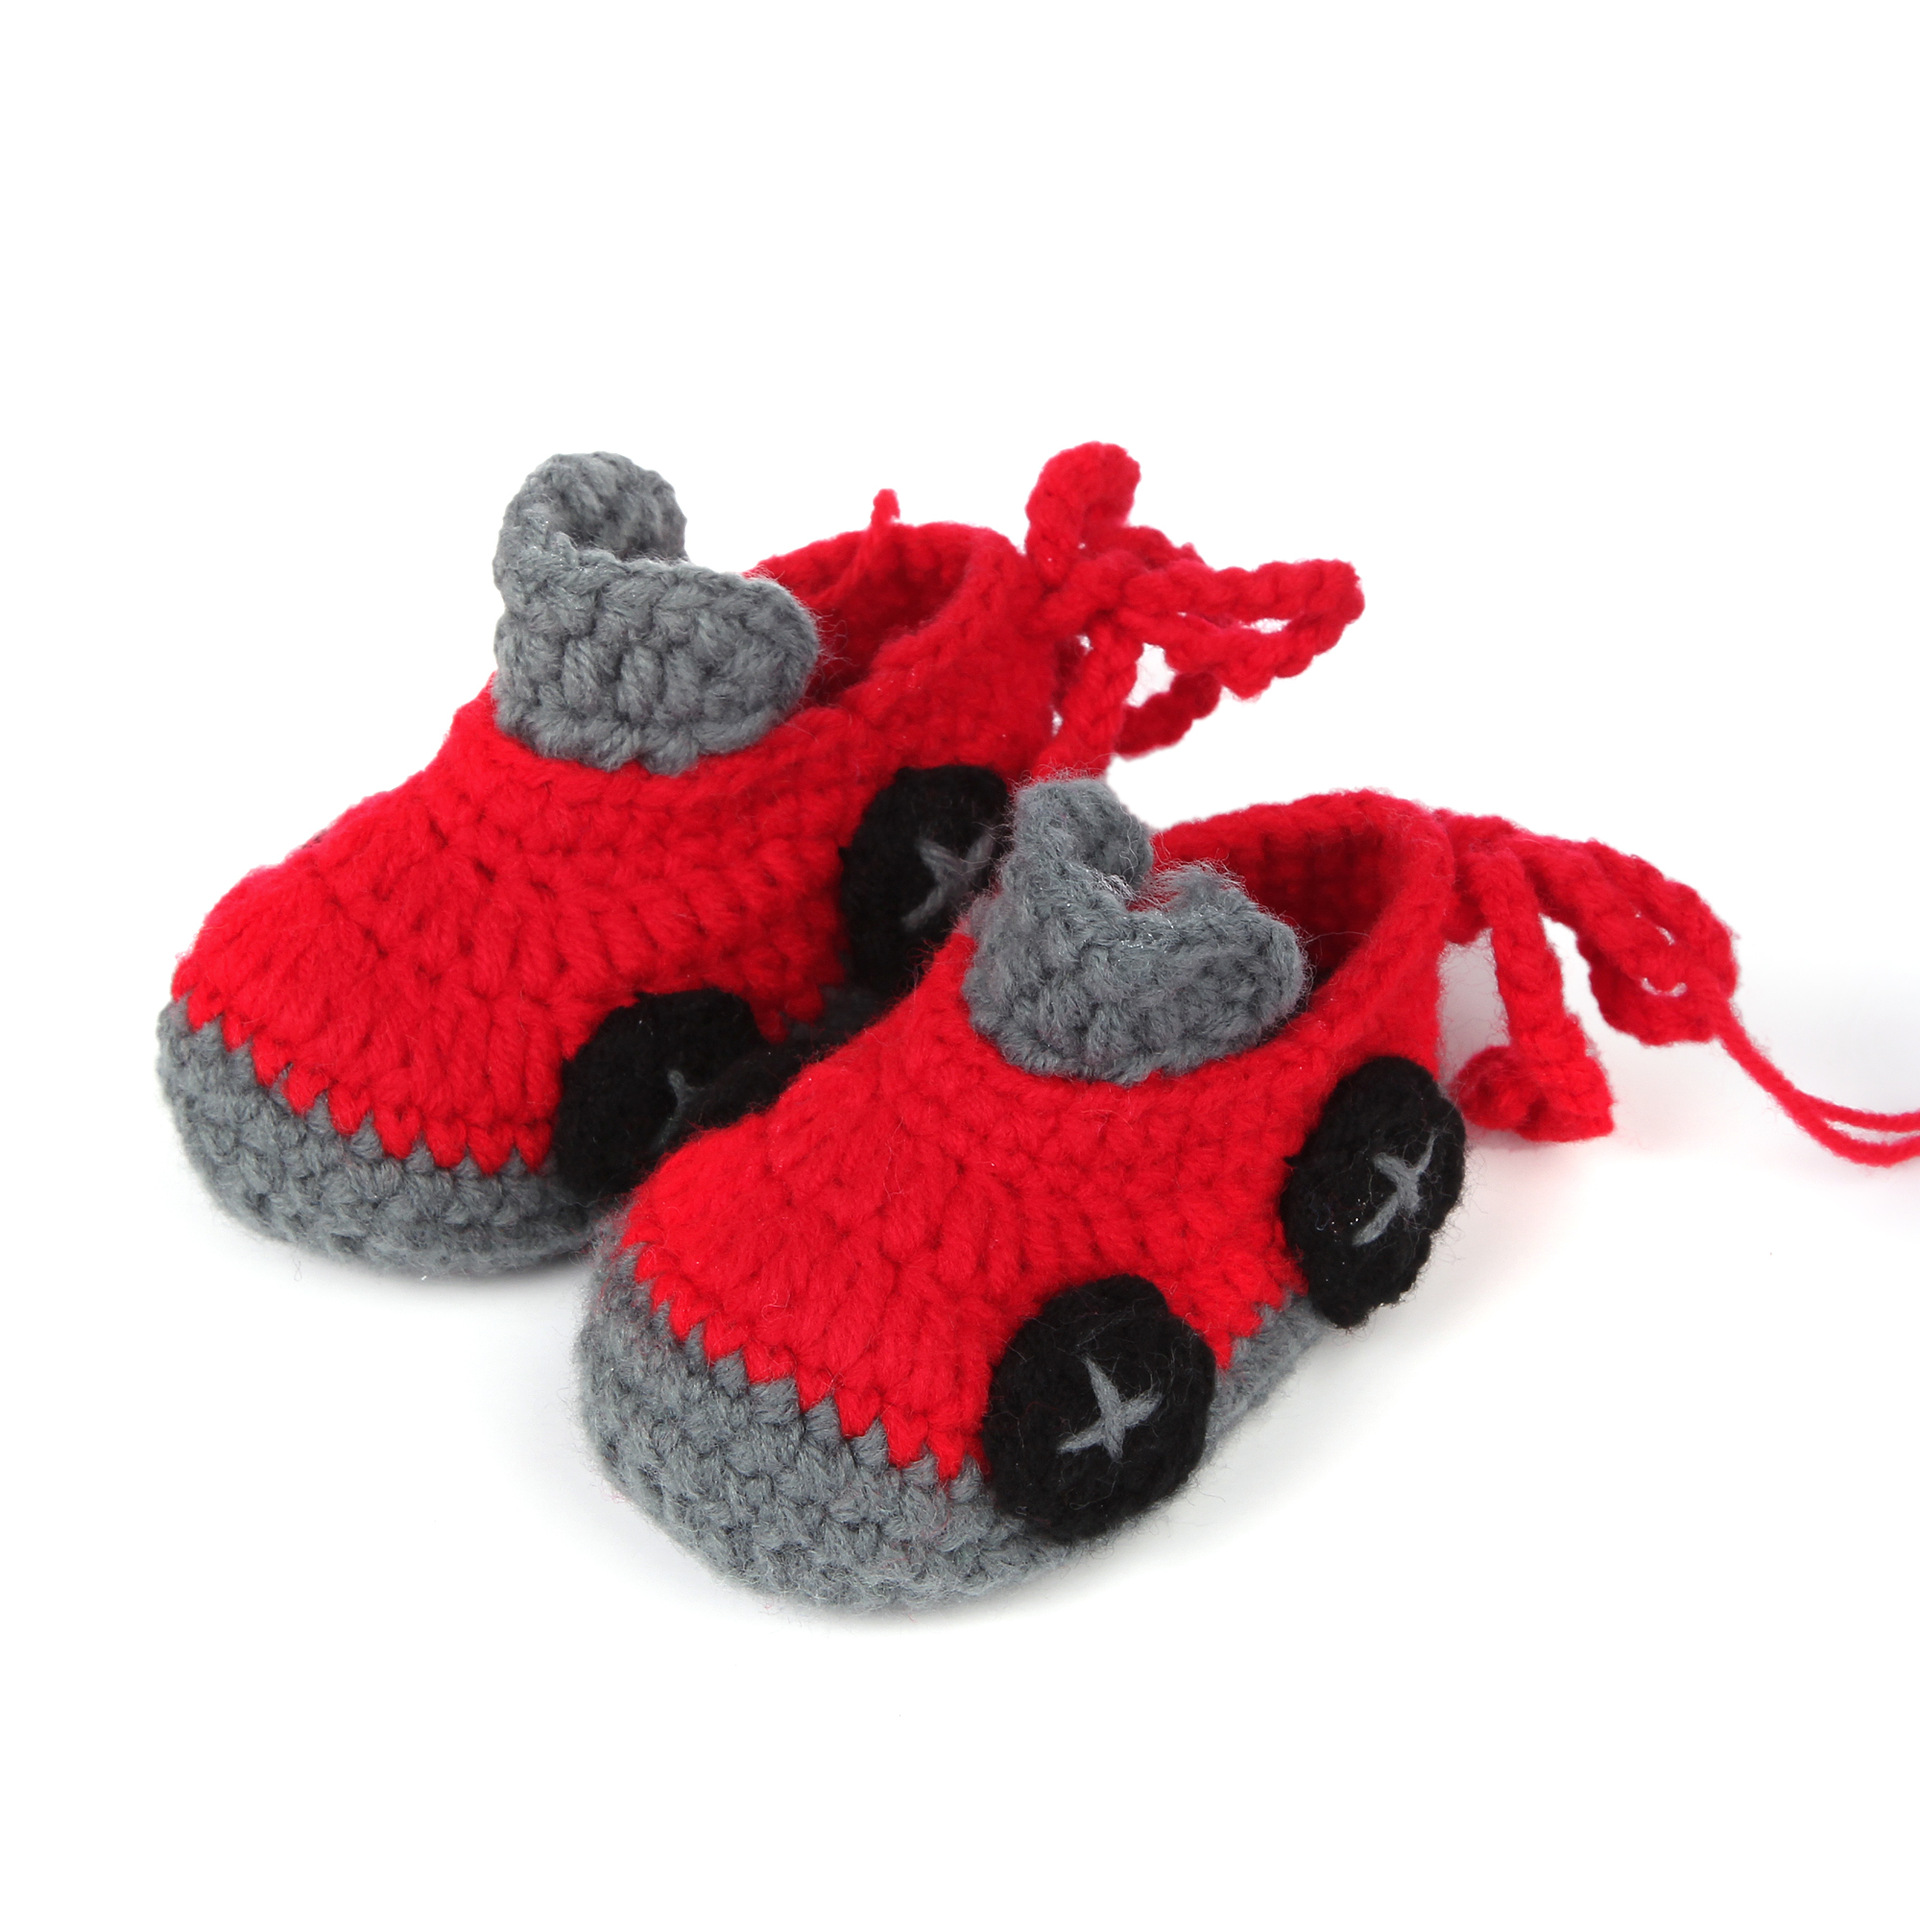 DOGEEK Unisex Newborn First Walkers Cute Crib Shoes Girl Boy Handmade Knit Sock Shoes Baby Crochet Knit Toddler Shoes Infant